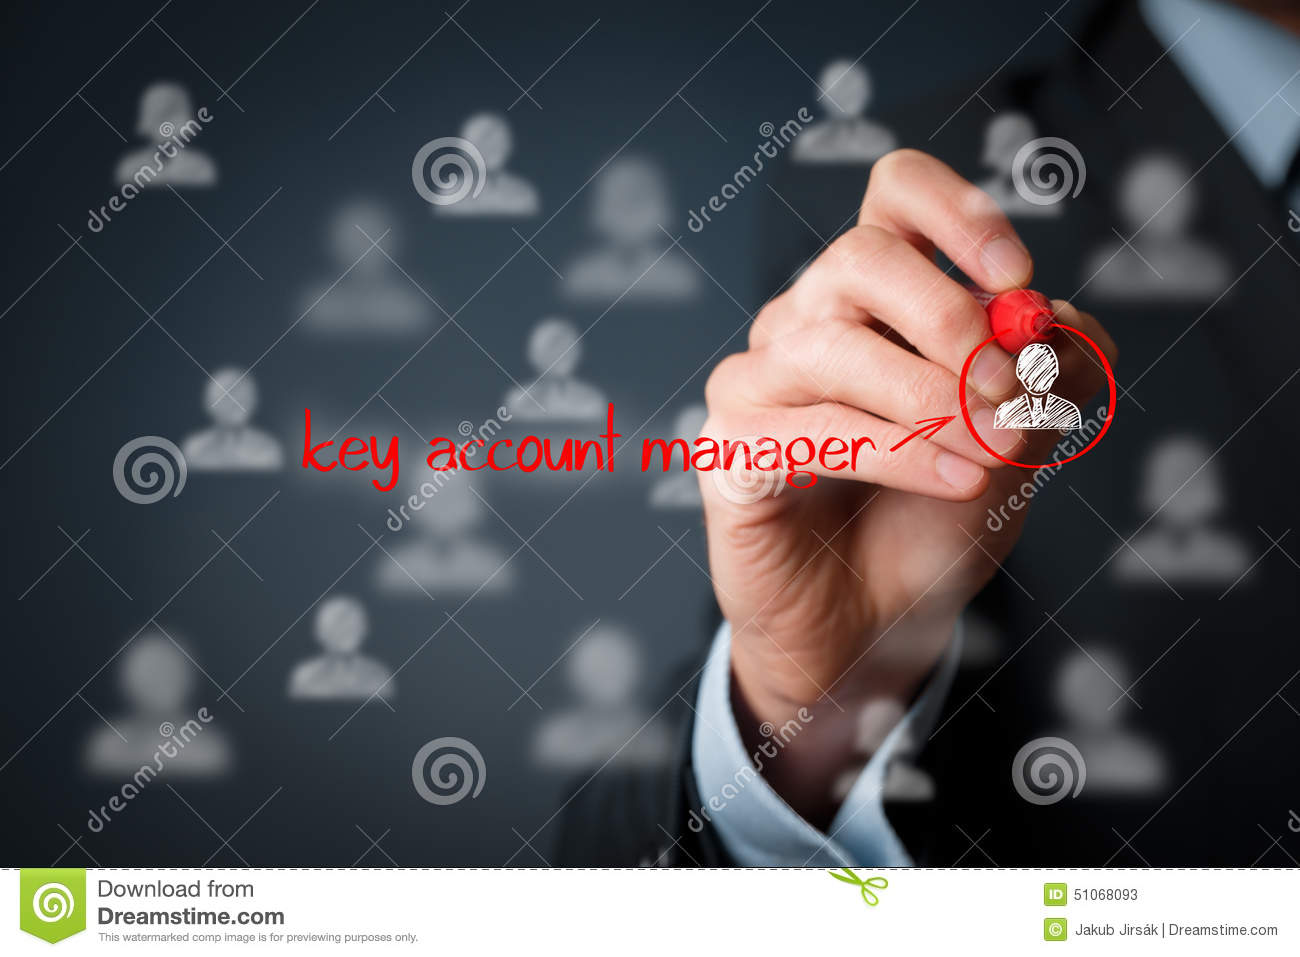 key account manager tk key account manager 23 04 2017